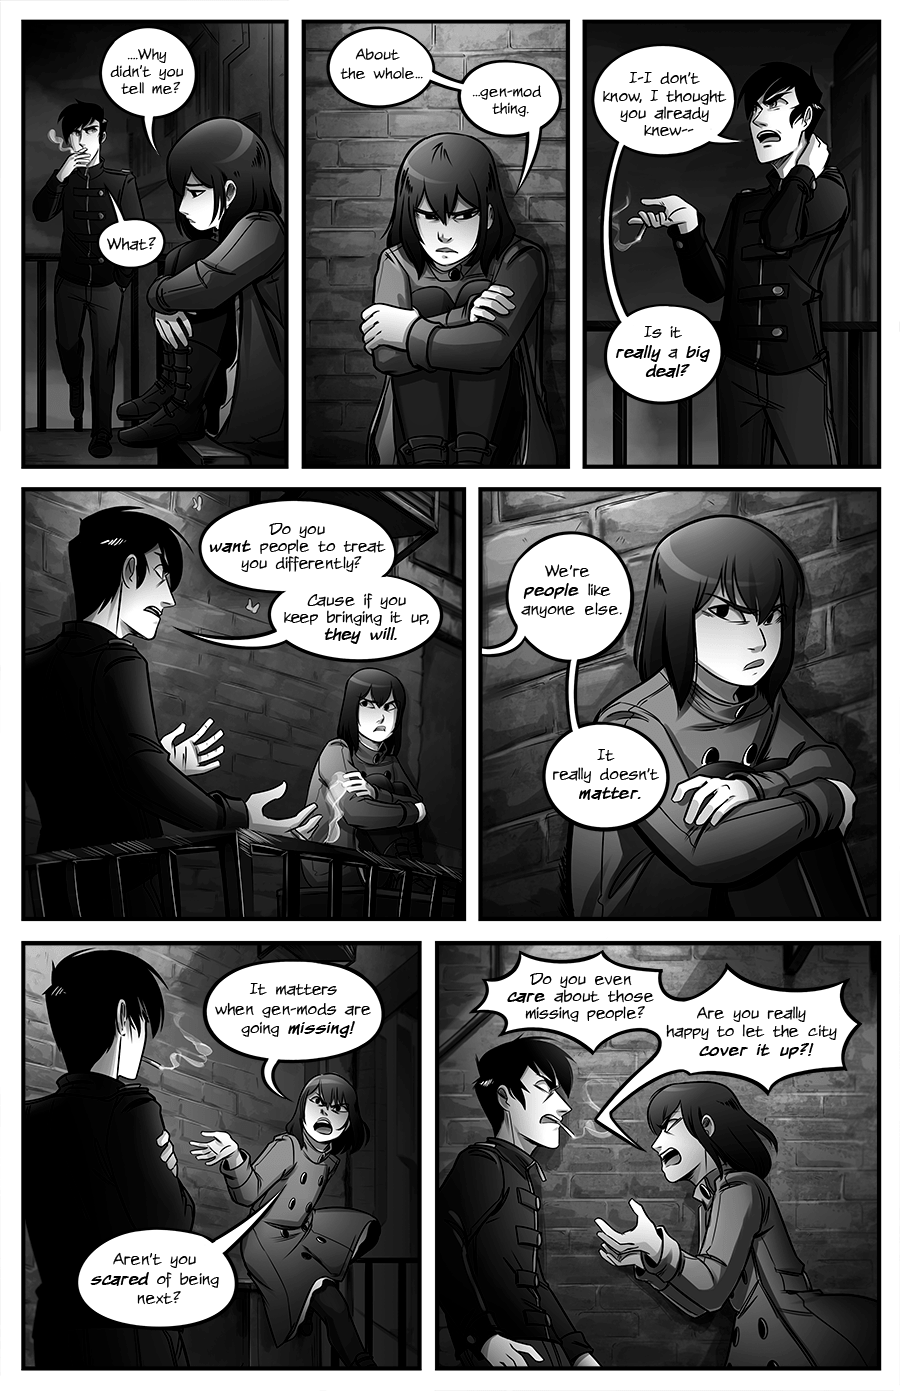 Ch 3 Page 32